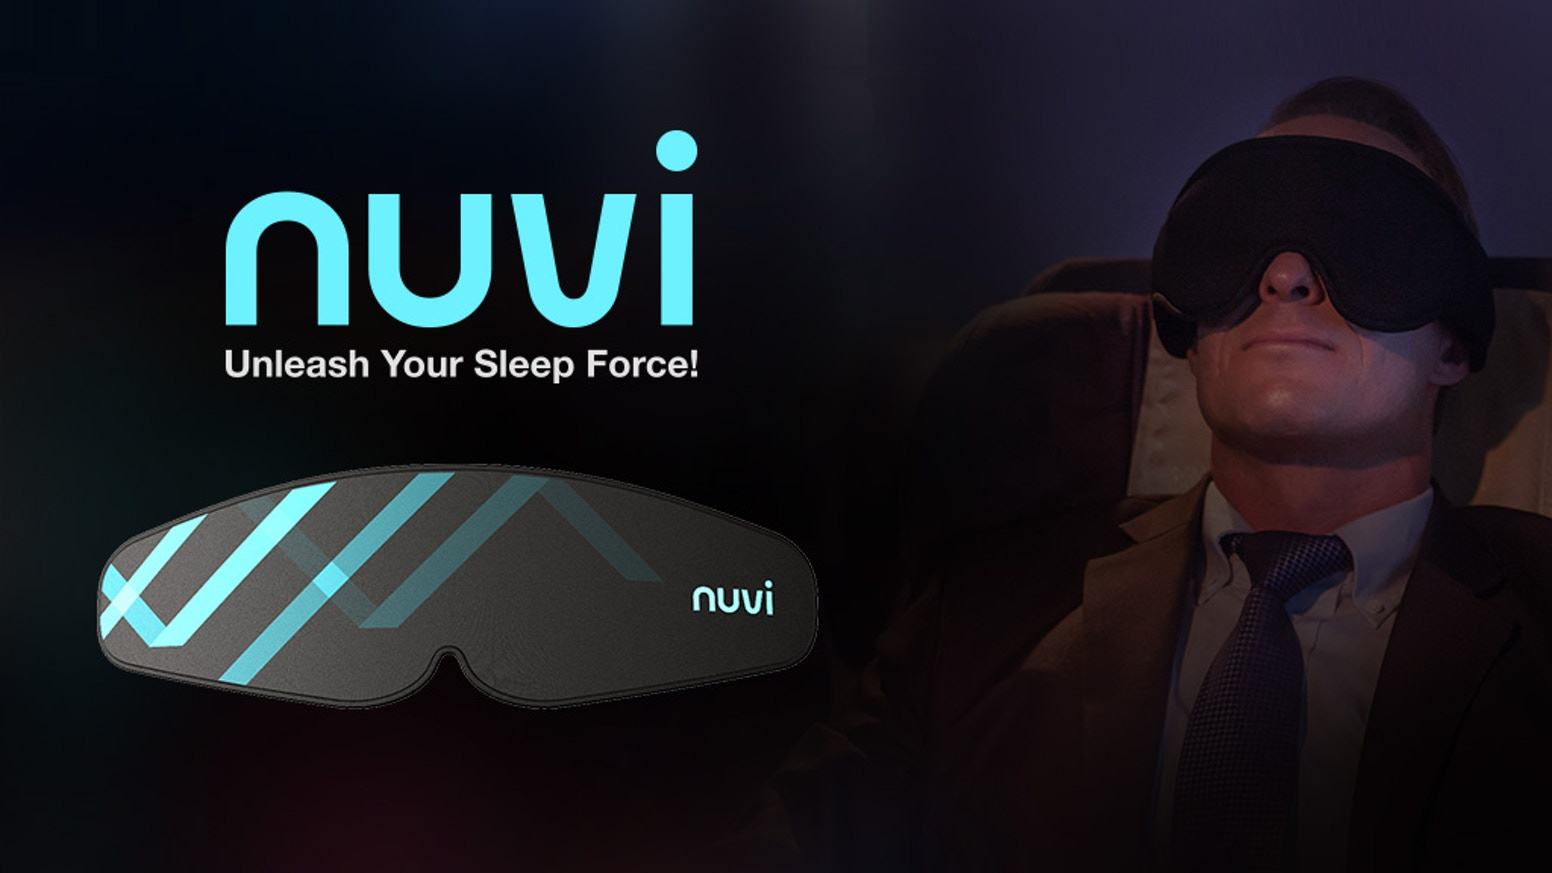 Nuvi is a smart sleeping mask designed to improve your sleep quality, creativity and adjust your jet lag!